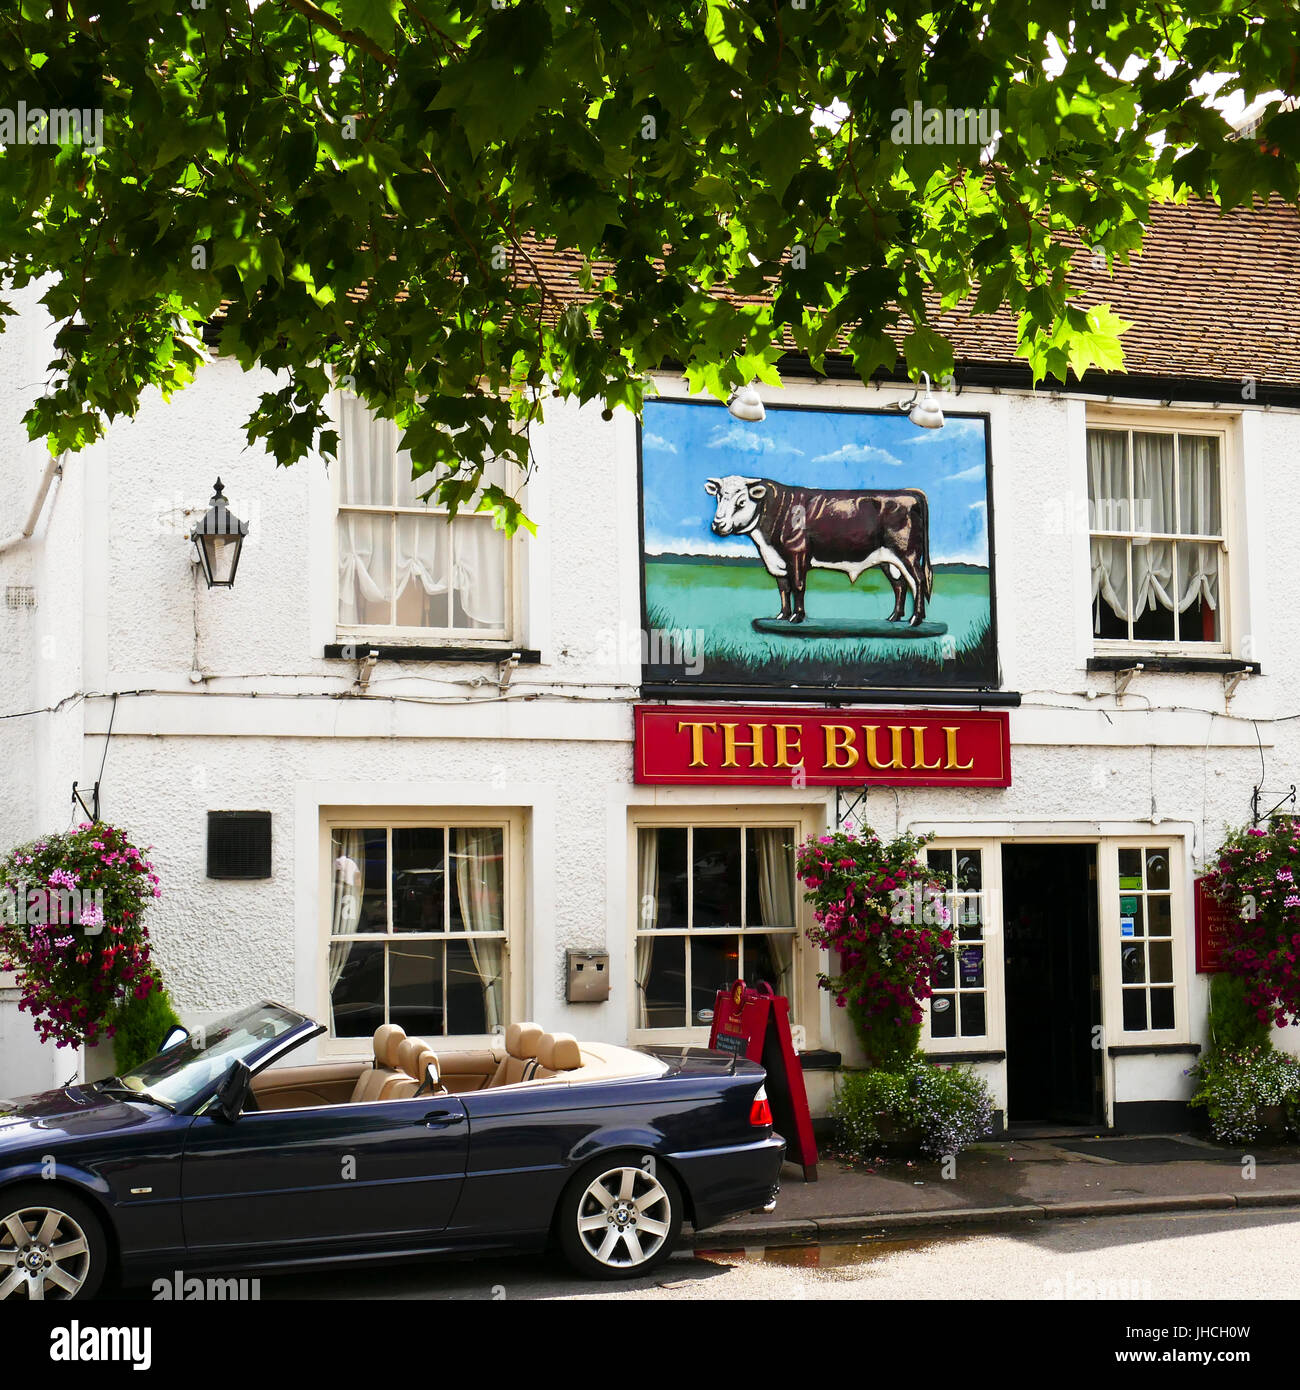 the bull pub at theydon bois essex with a convertible car parked outside JHCH0W Résultat Supérieur 50 Impressionnant Convertible Bois Galerie 2017 Ojr7